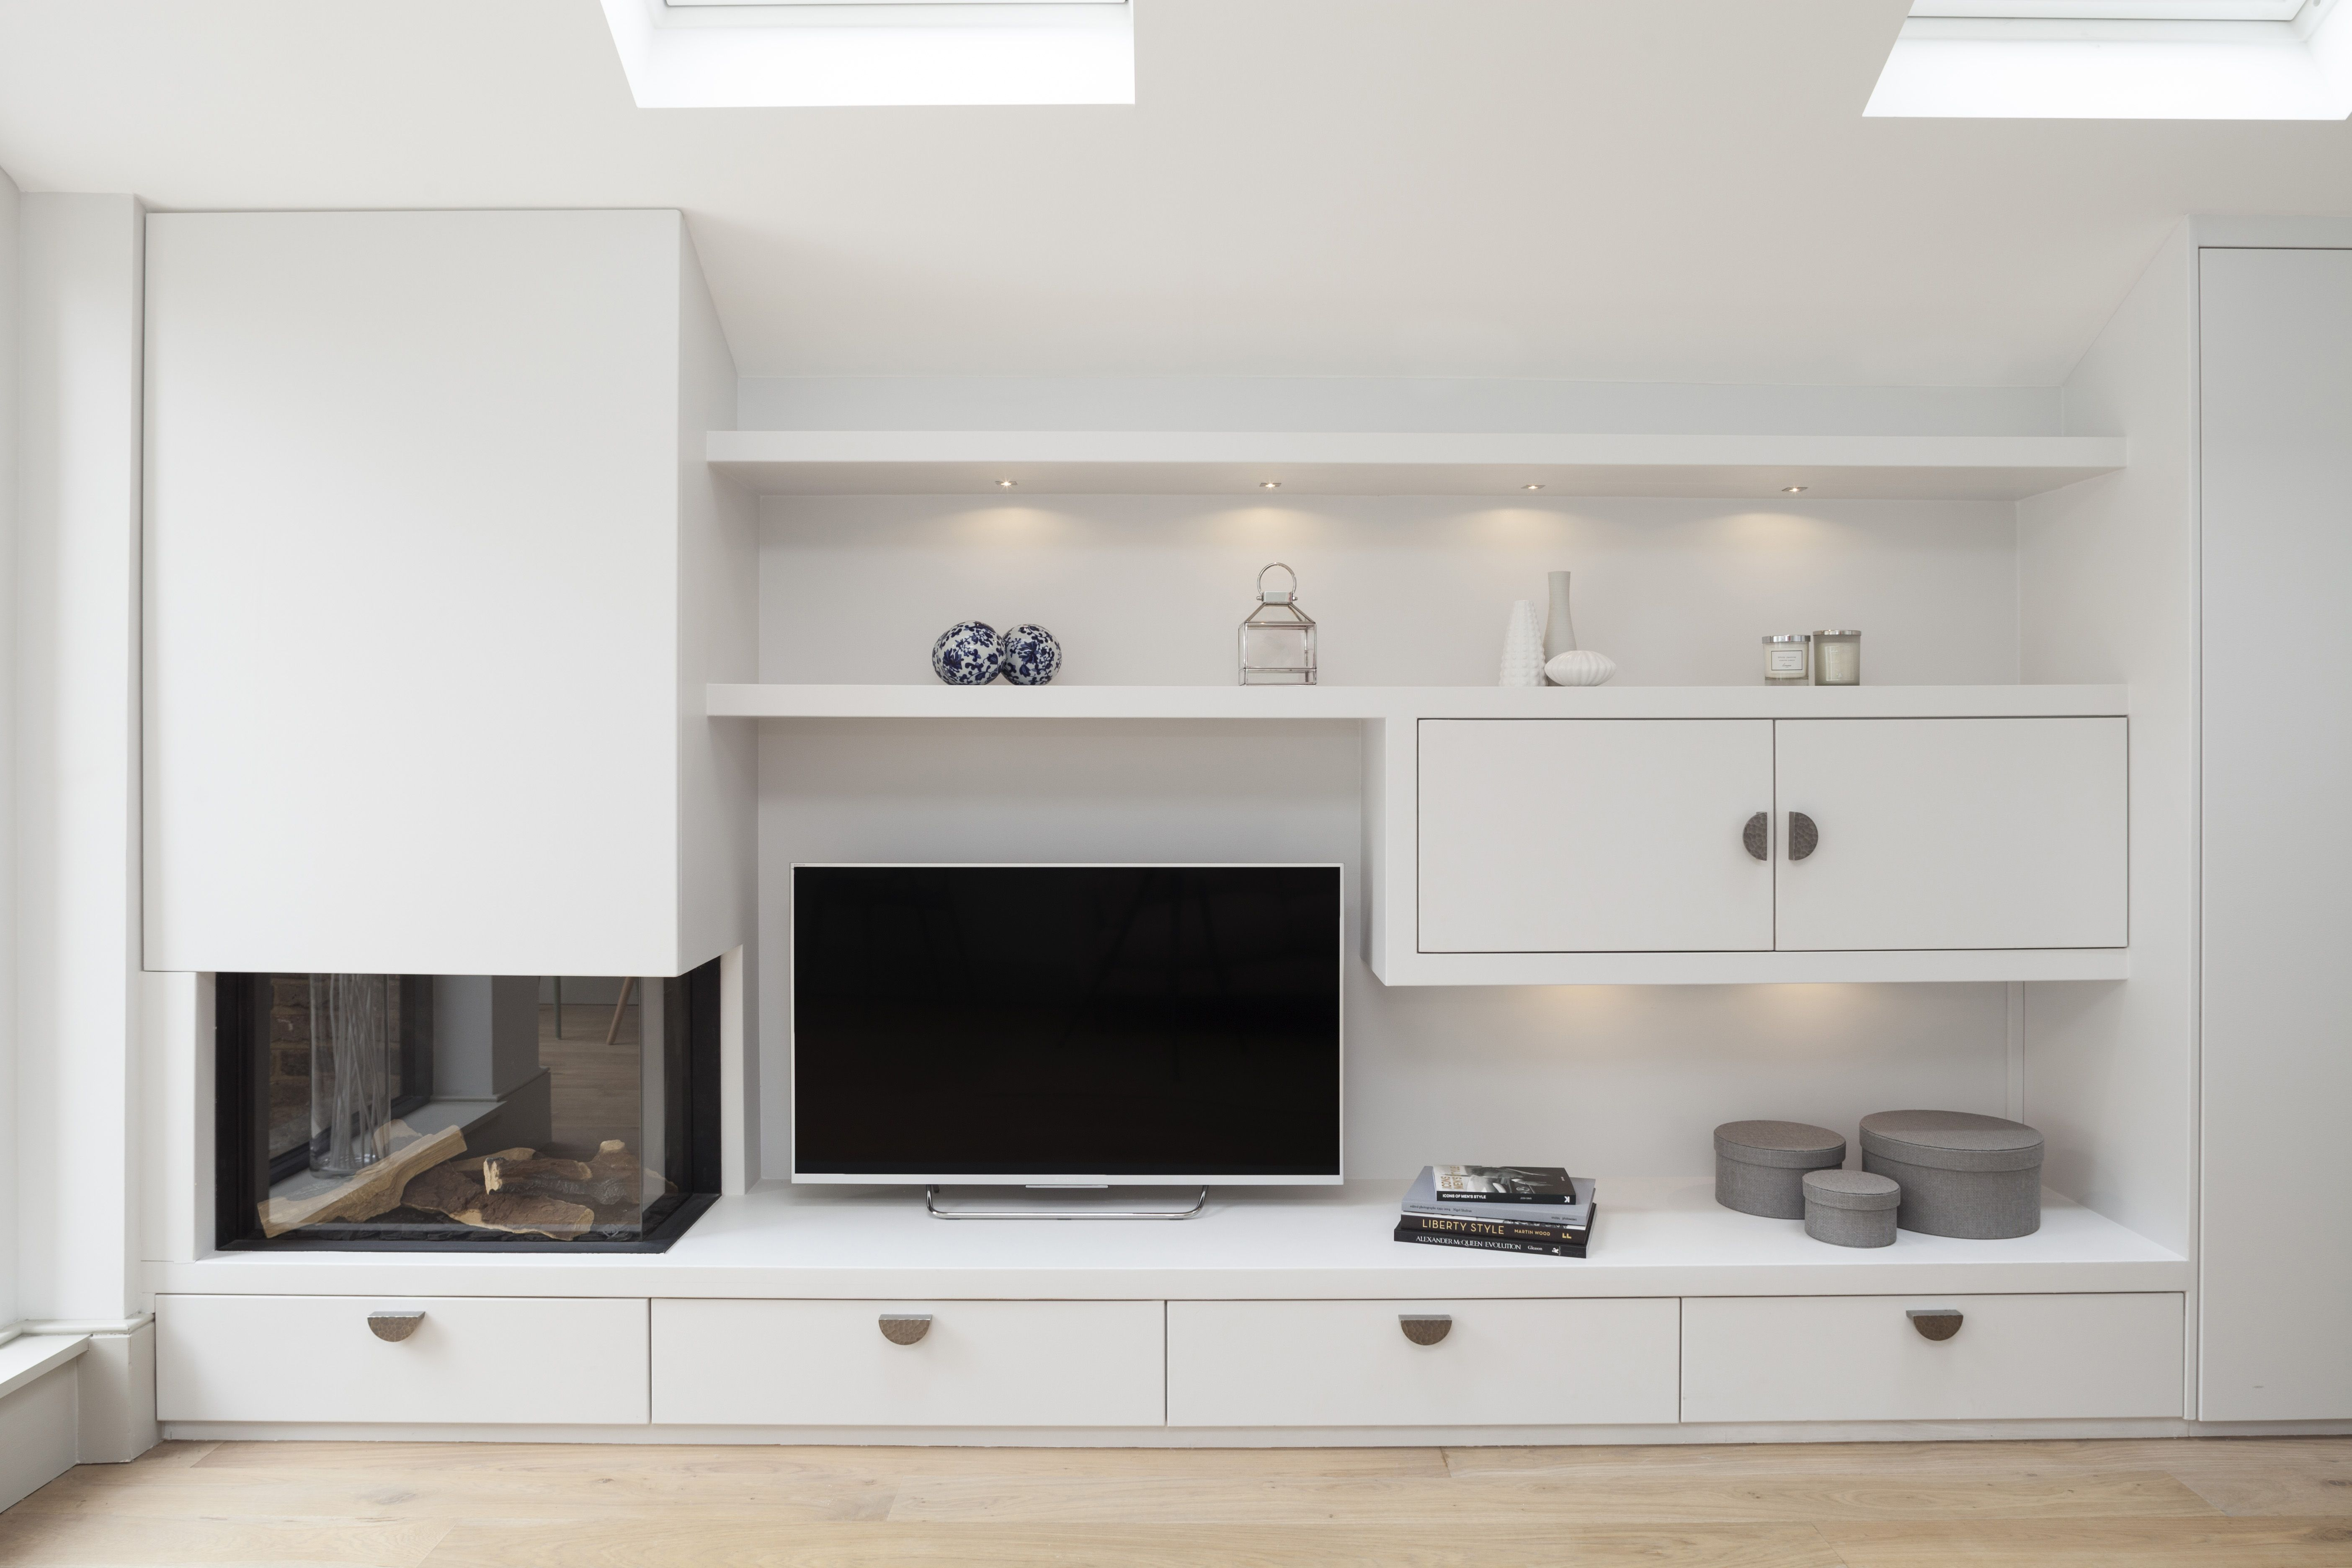 Built in gas fire, TV and display shelving with LED lighting and ...